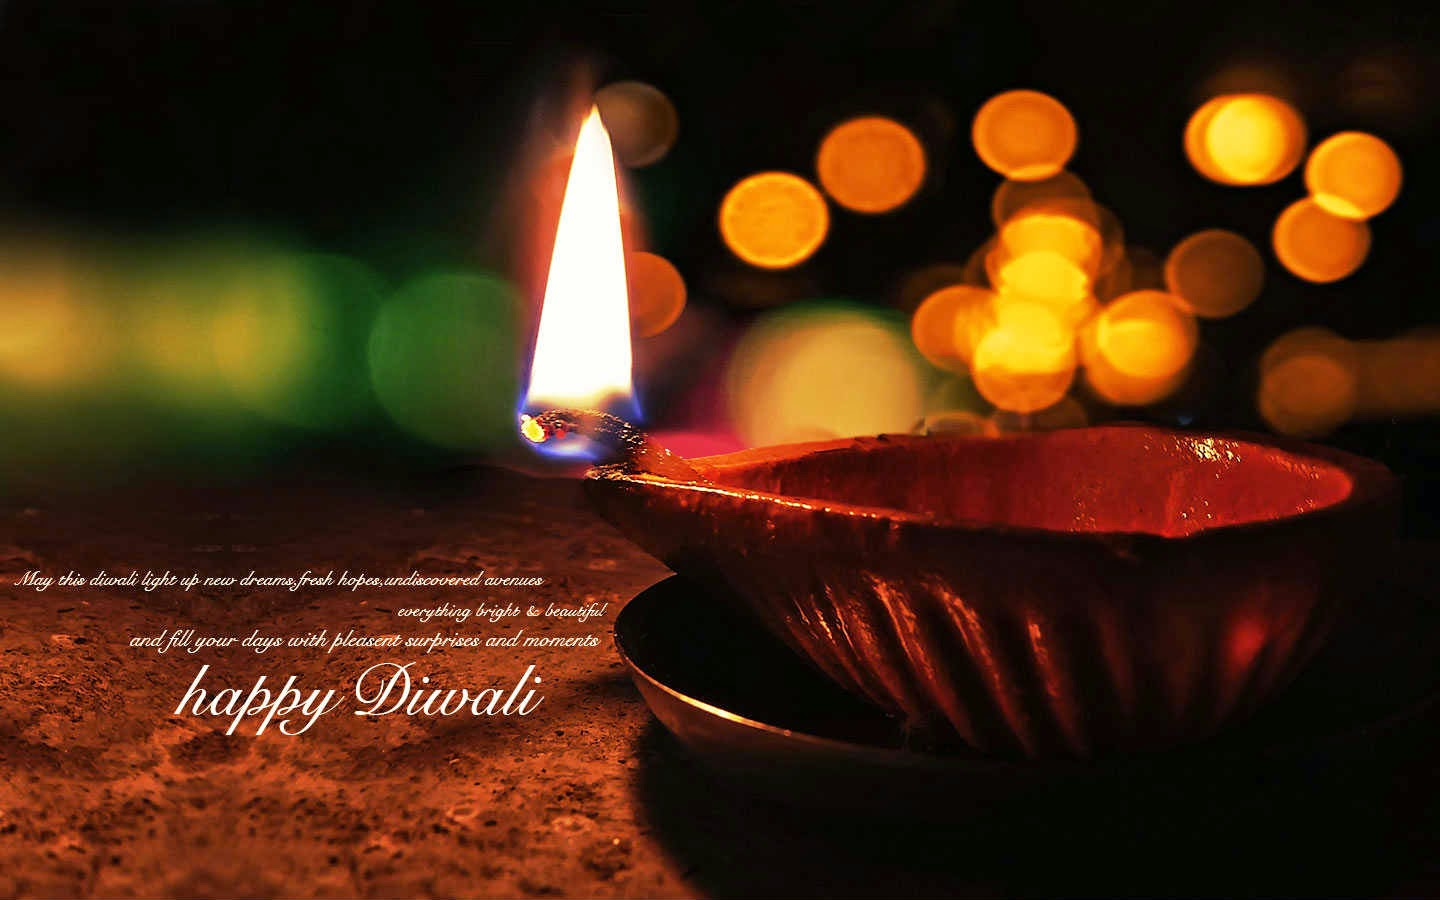 Best Gujarati Quotes Wallpaper Latest Happy Diwali 2015 Wishes Messages Images Pictures